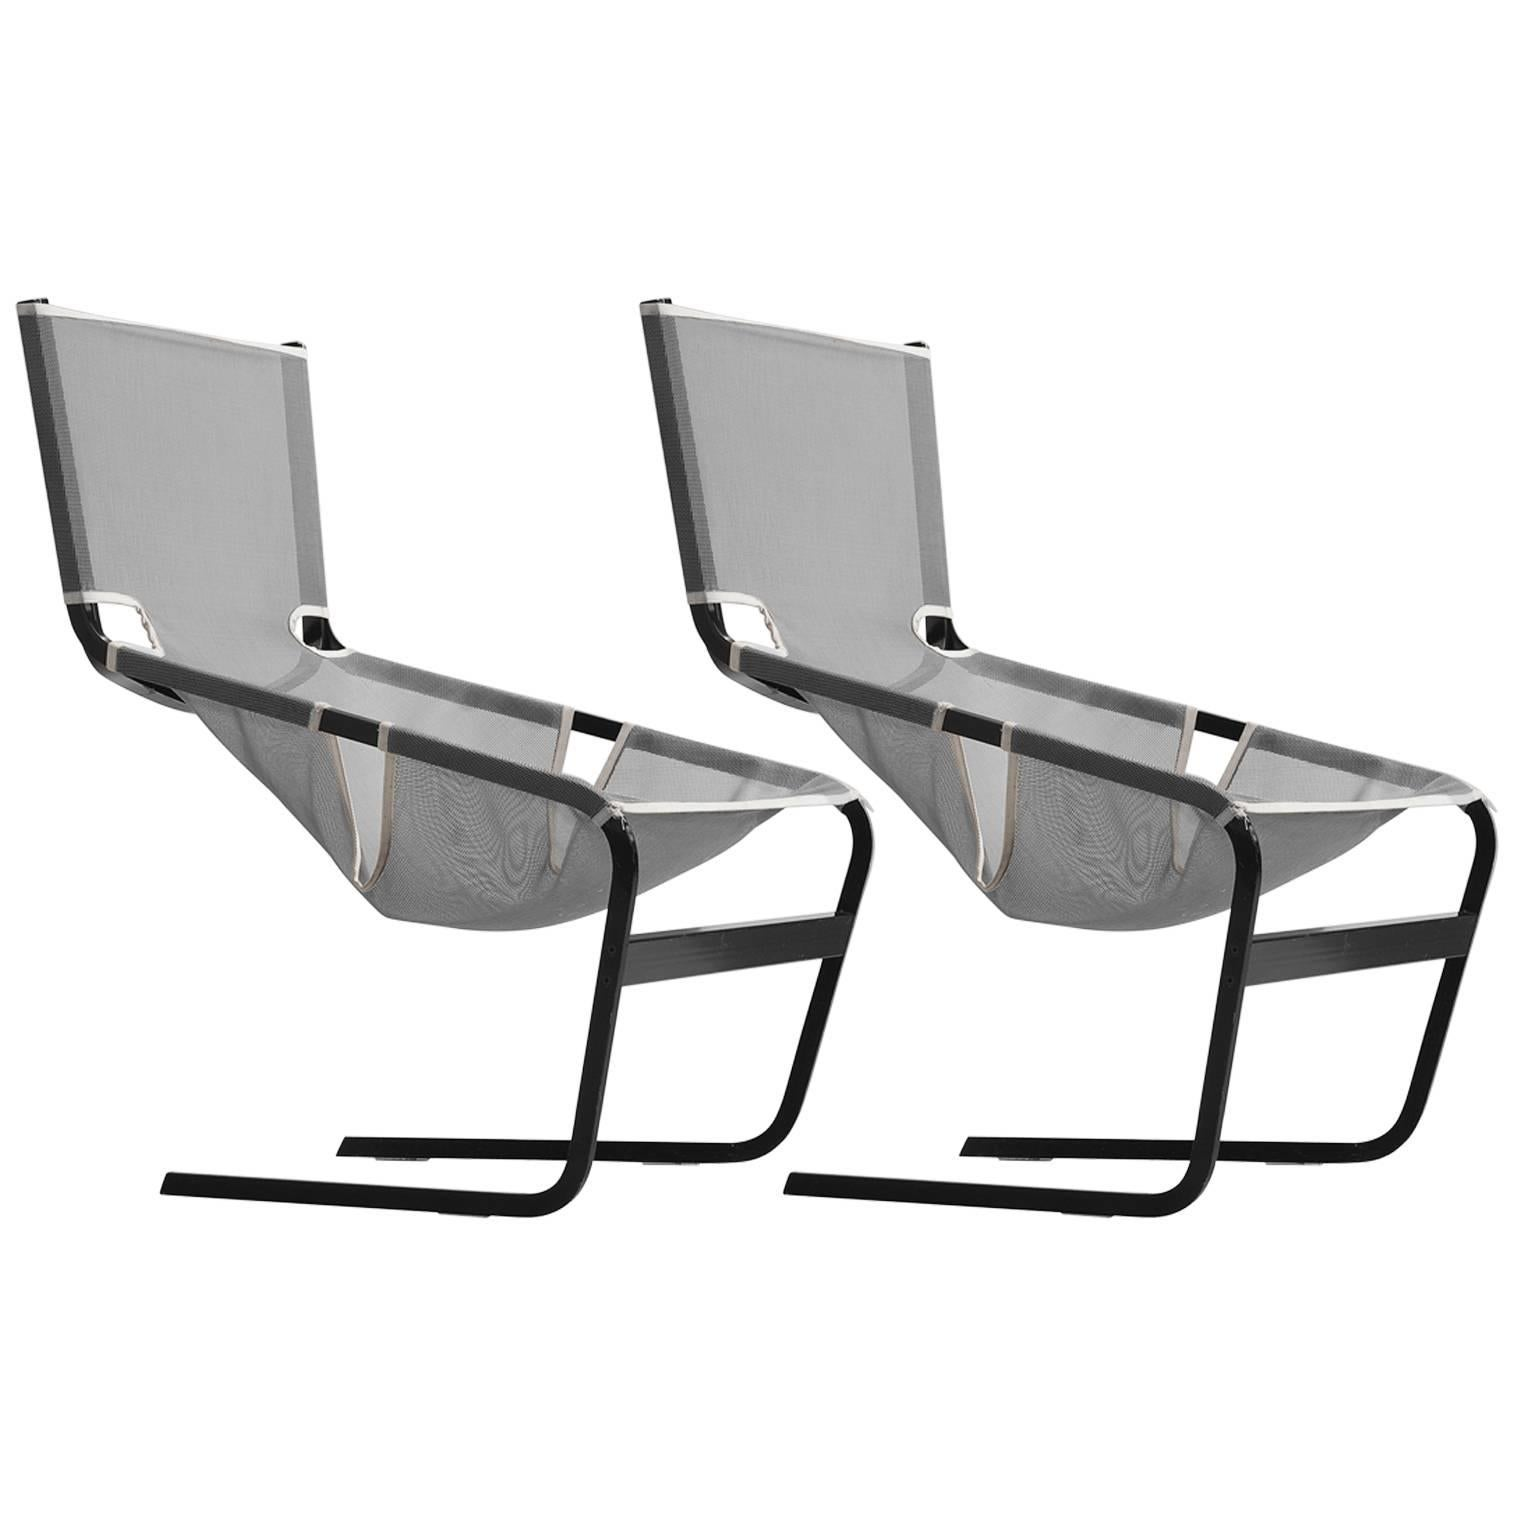 F-444 Lounge Chair by Pierre Paulin for Artifort